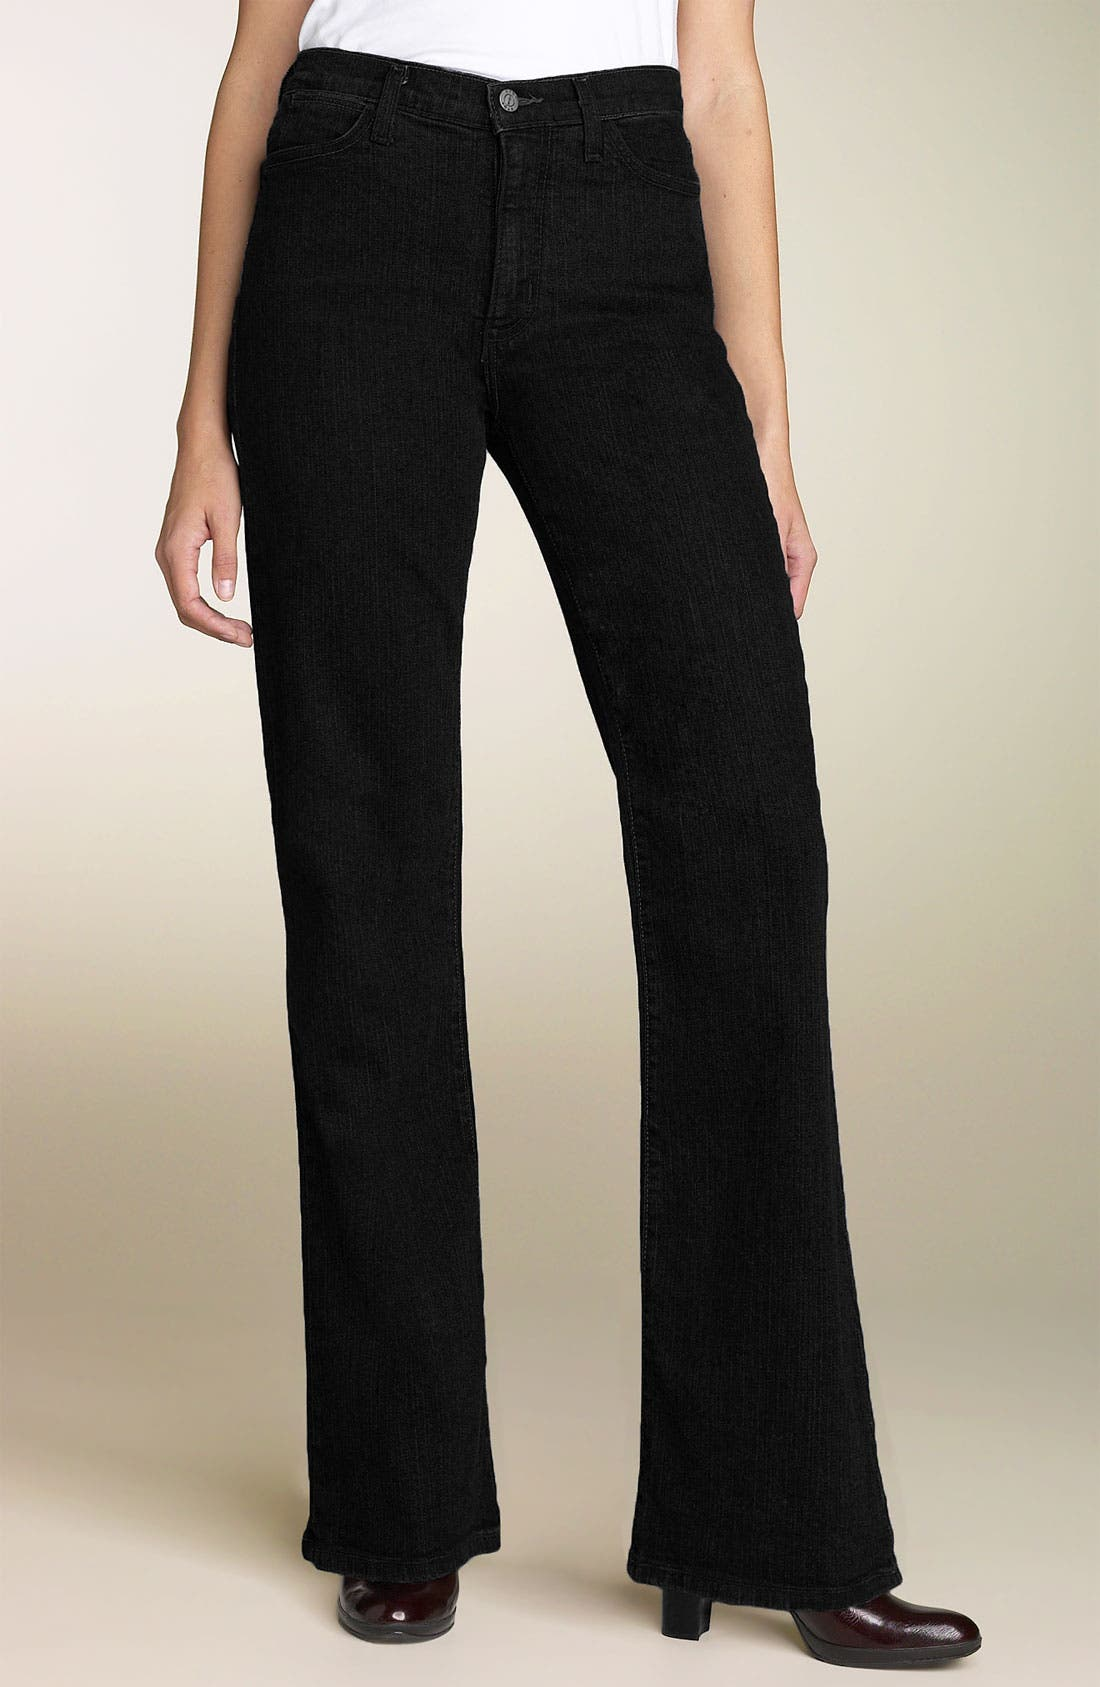 Main Image - NYDJ 'Sarah' Stretch Bootcut Jeans (Black) (Long)